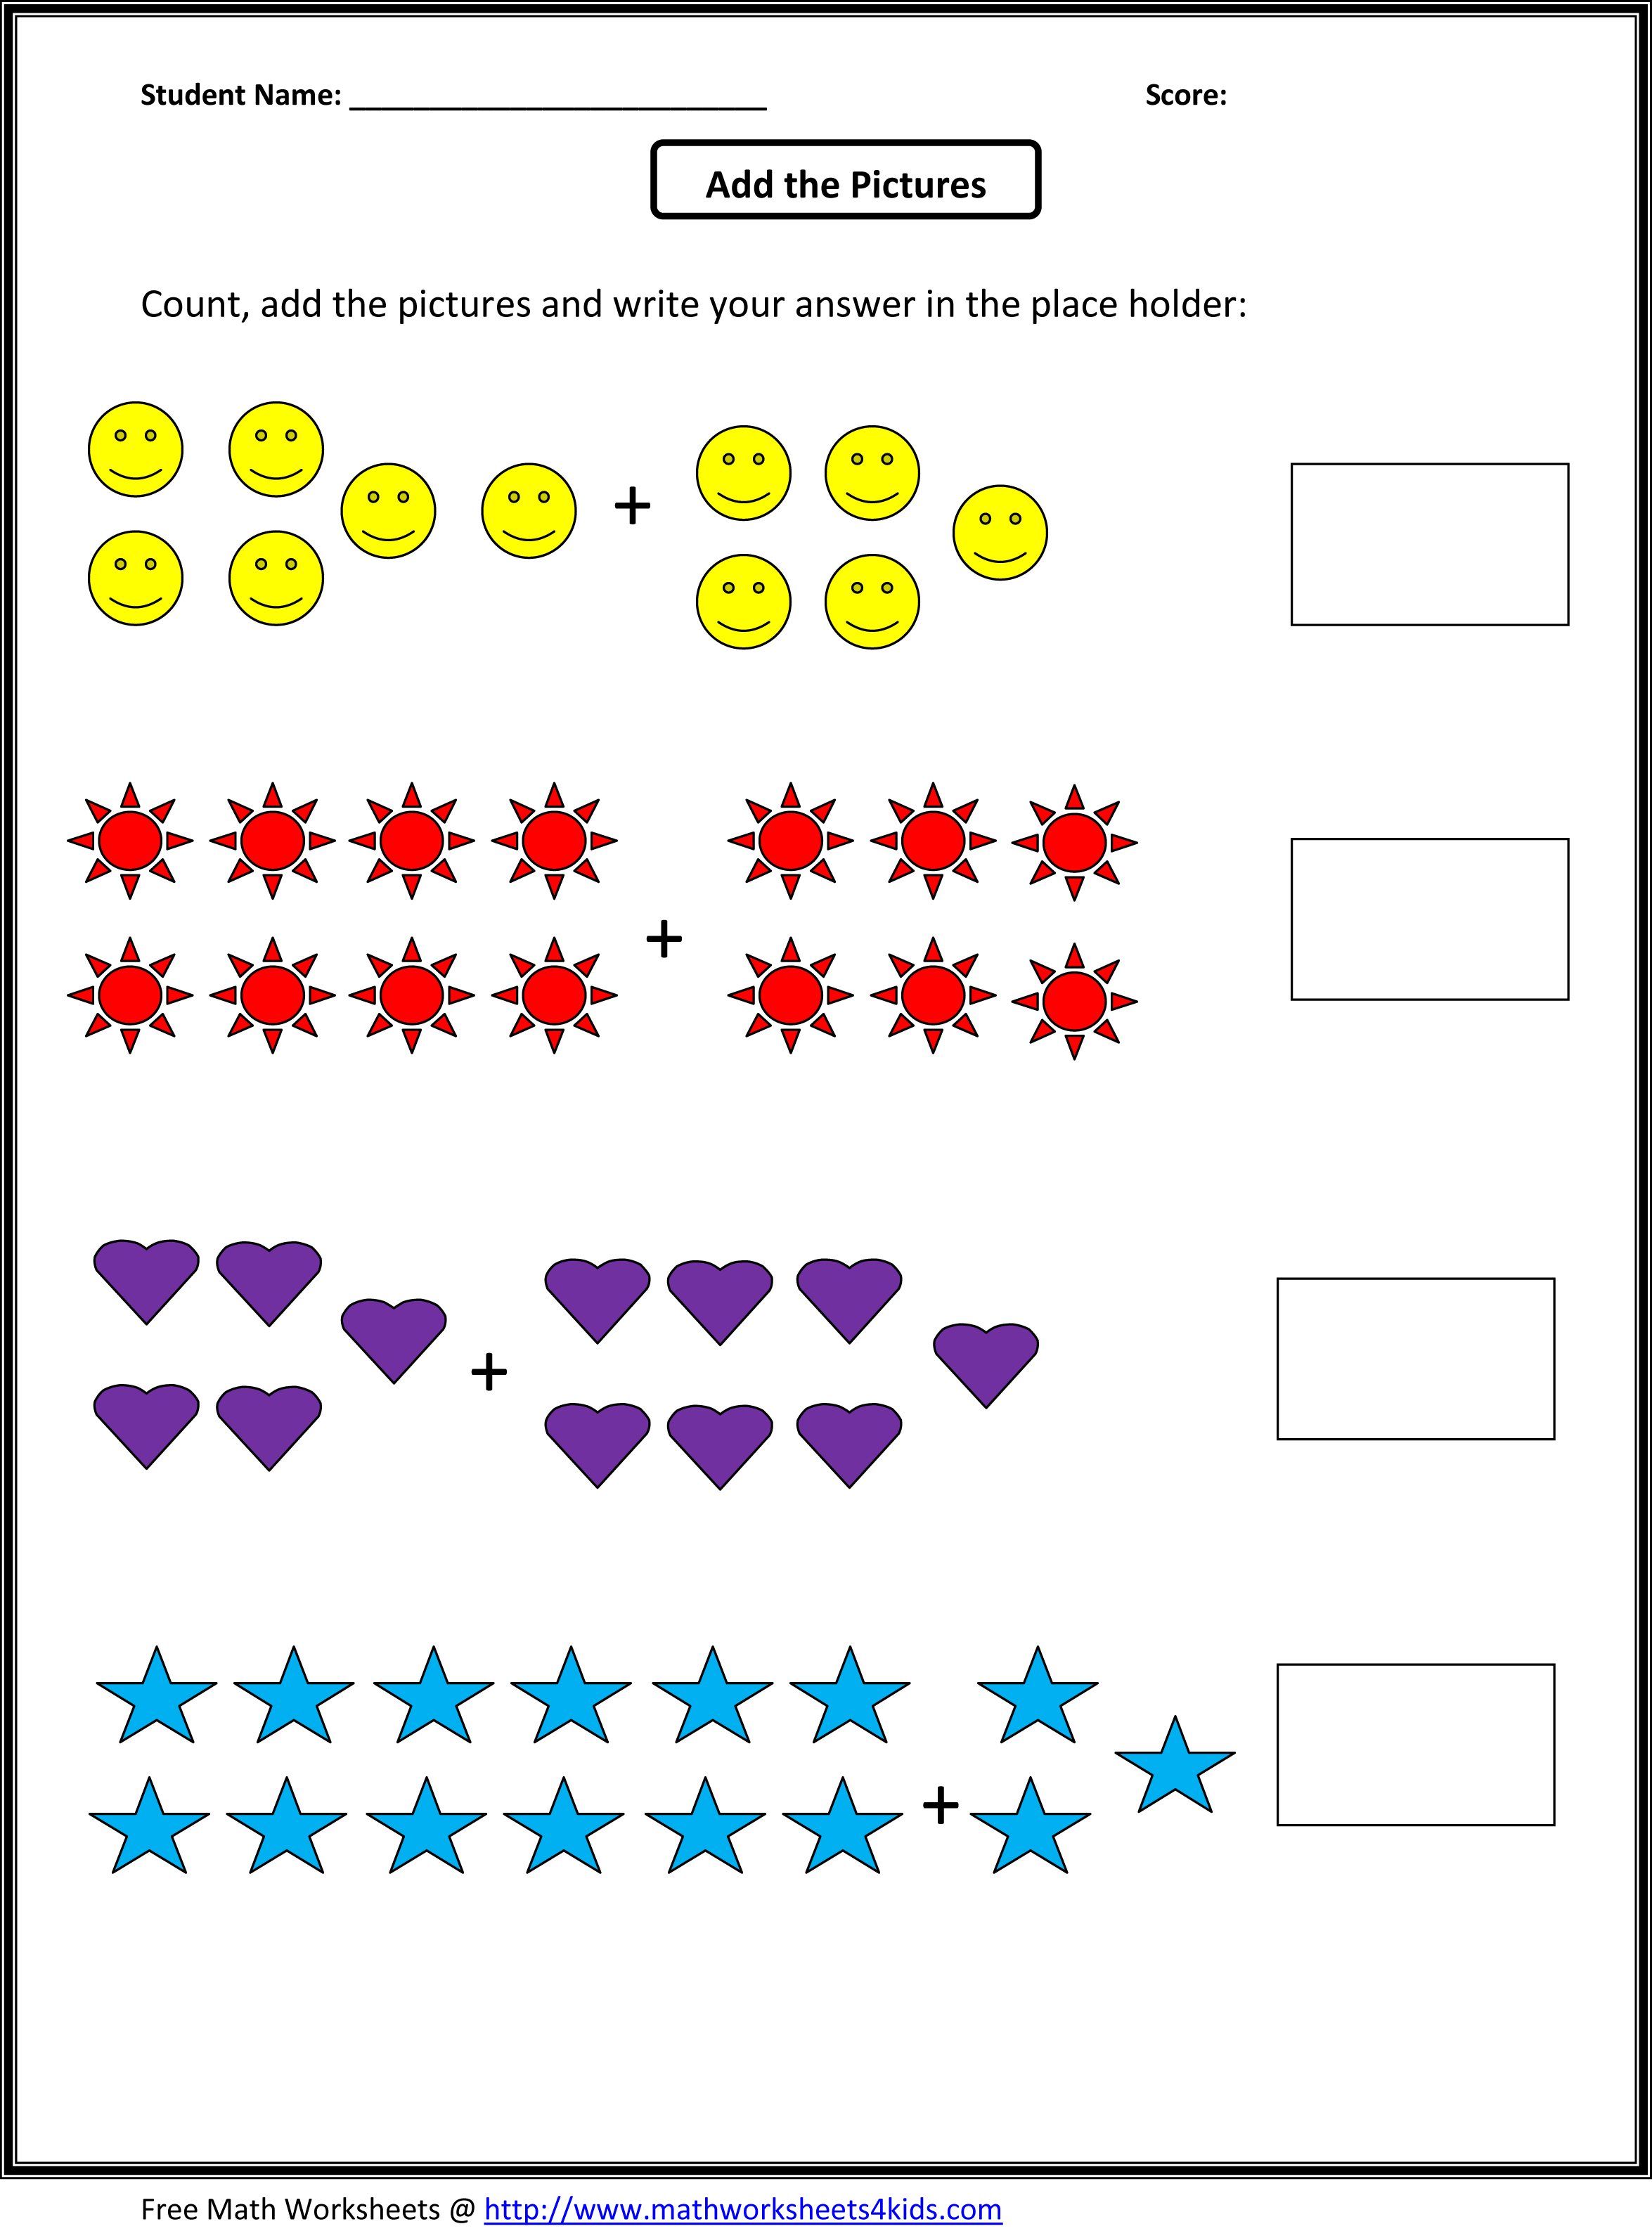 Weirdmailus  Personable Grade  Maths Worksheet  Reocurent With Fetching Math Worksheets For St Grade Free  Reocurent With Attractive Then Vs Than Worksheet Also Free Rd Grade Printable Worksheets In Addition Vba Worksheet Name And Th Grade Math Printable Worksheets As Well As Water Cycle Worksheet High School Additionally Worksheet   Area Of Trapezoids Rhombi And Kites Answers From Reocurentcom With Weirdmailus  Fetching Grade  Maths Worksheet  Reocurent With Attractive Math Worksheets For St Grade Free  Reocurent And Personable Then Vs Than Worksheet Also Free Rd Grade Printable Worksheets In Addition Vba Worksheet Name From Reocurentcom